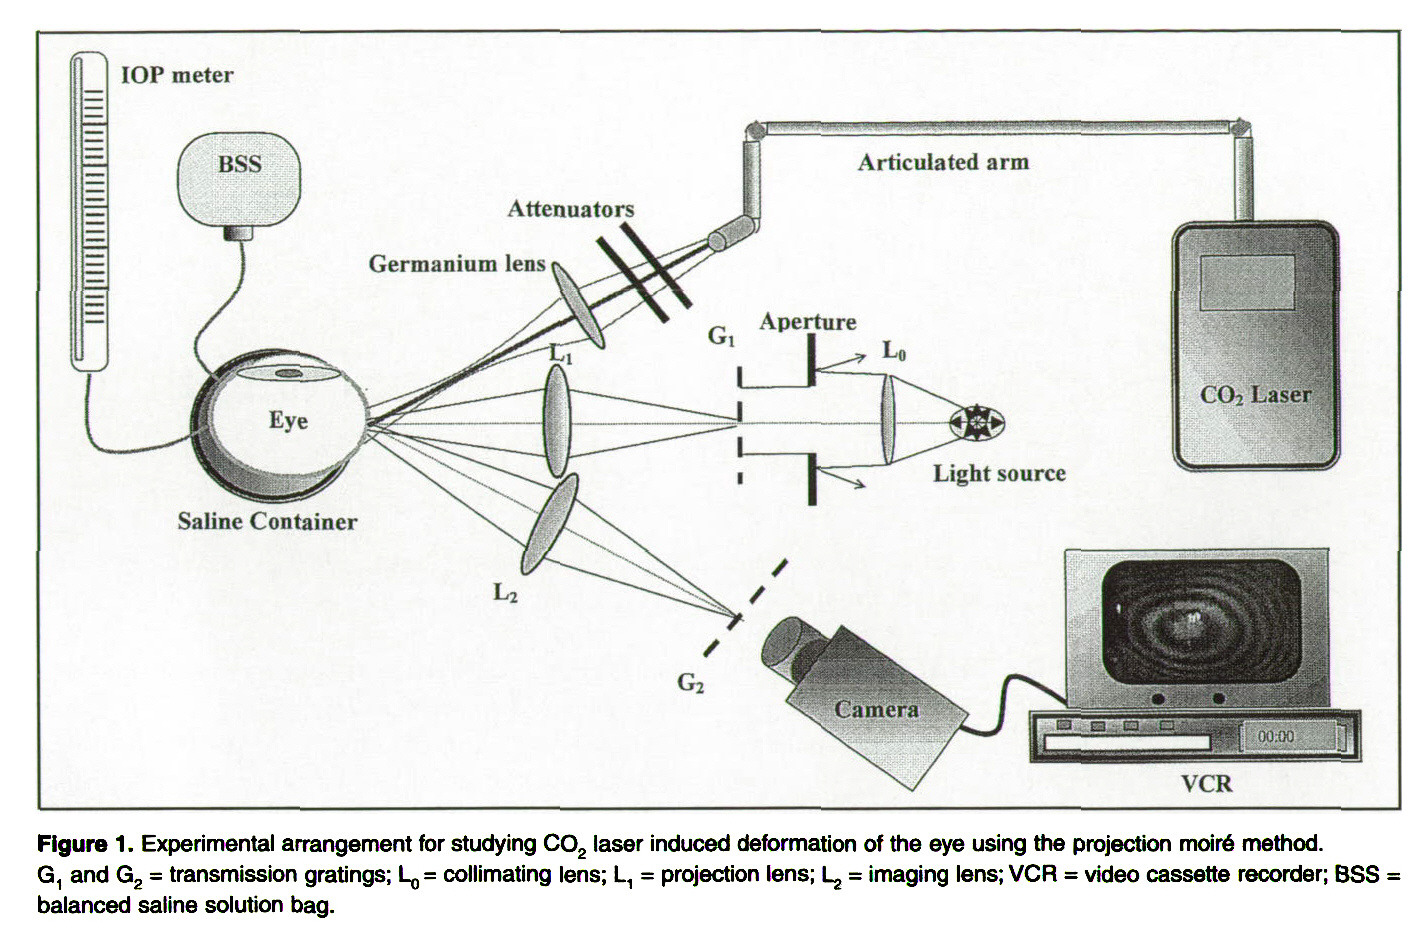 co2 laser diagram the co2 laser